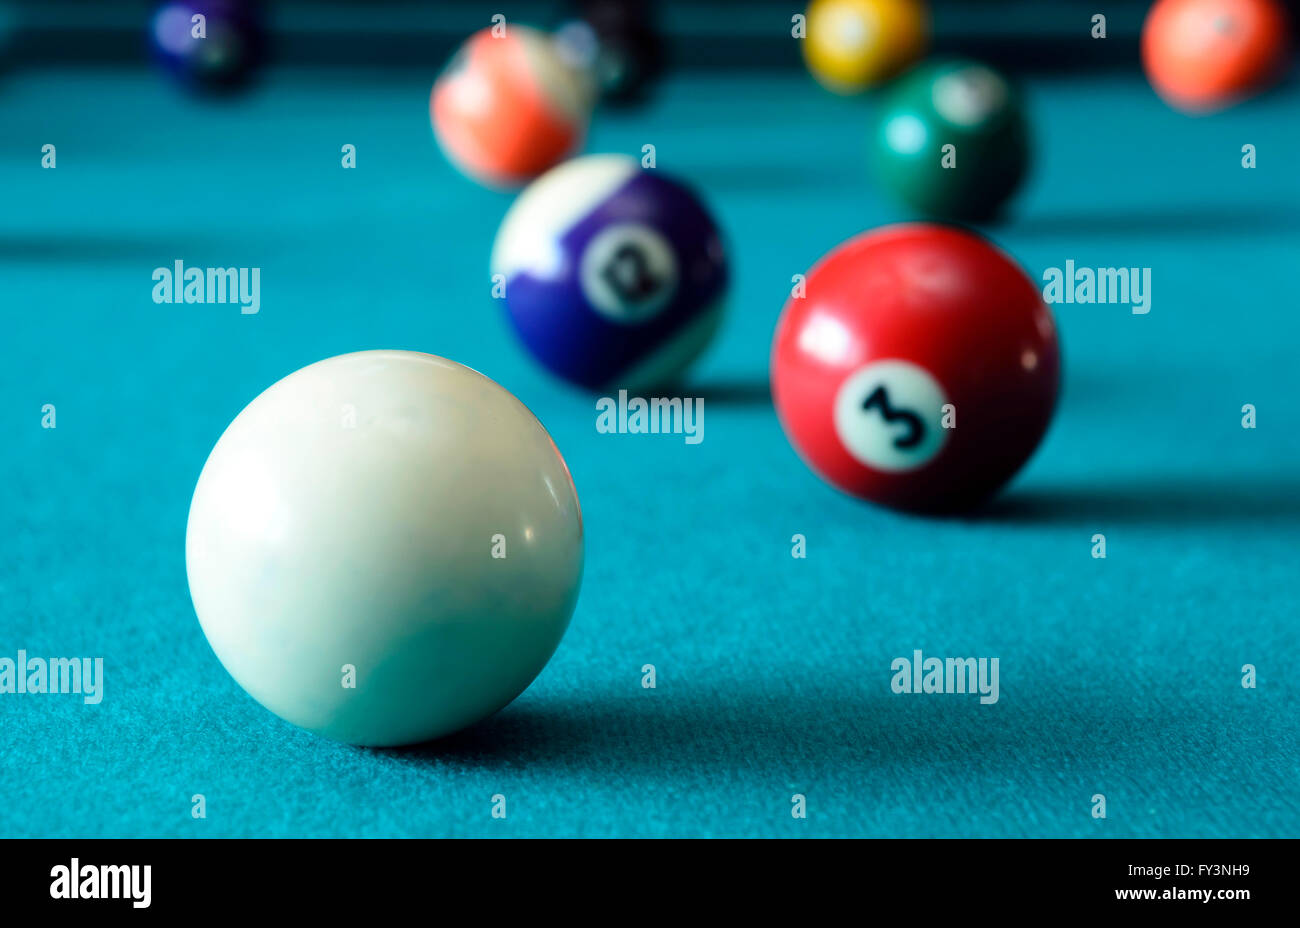 Balls on pool table - Stock Image